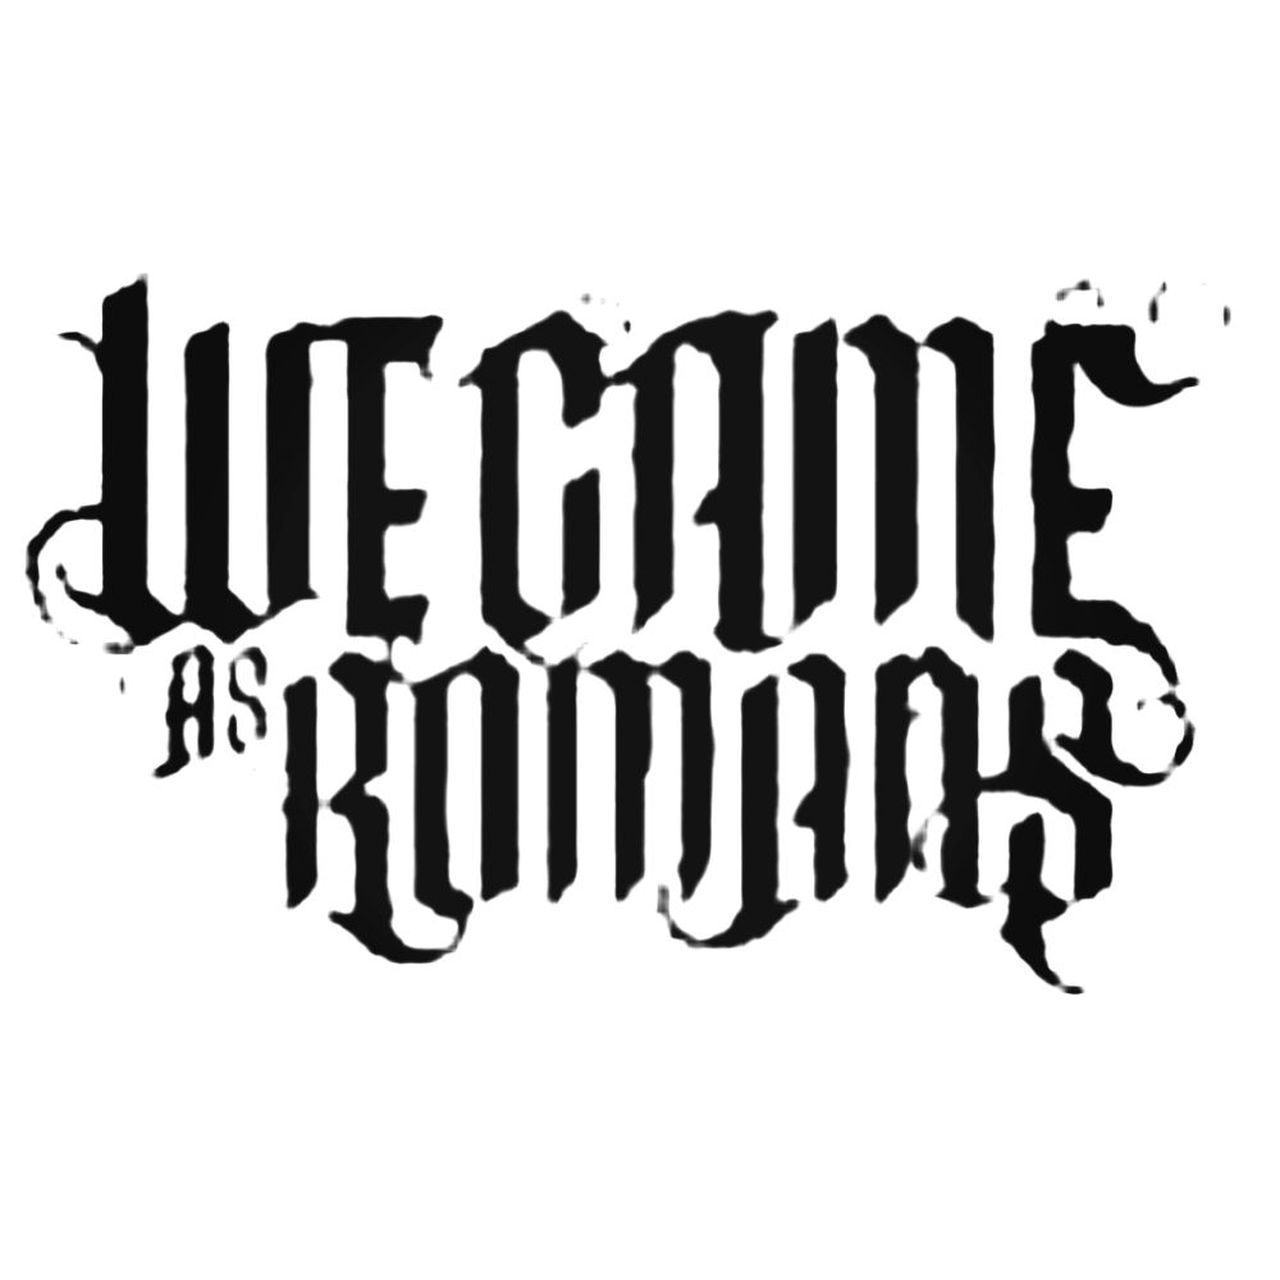 We Came As Romans Band Decal Sticker.